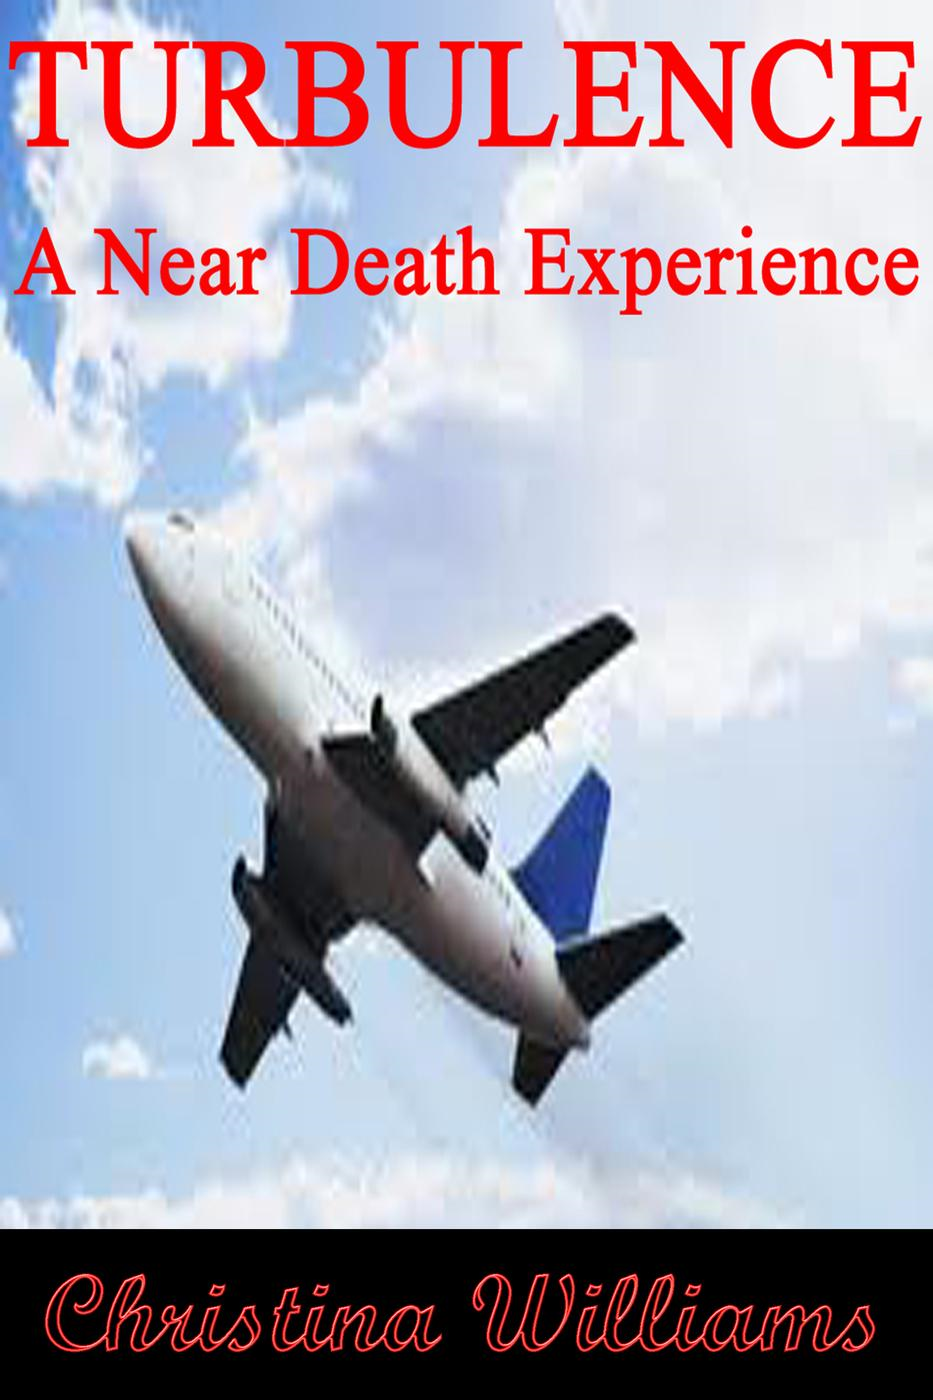 Turbulence: A Near Death Experience